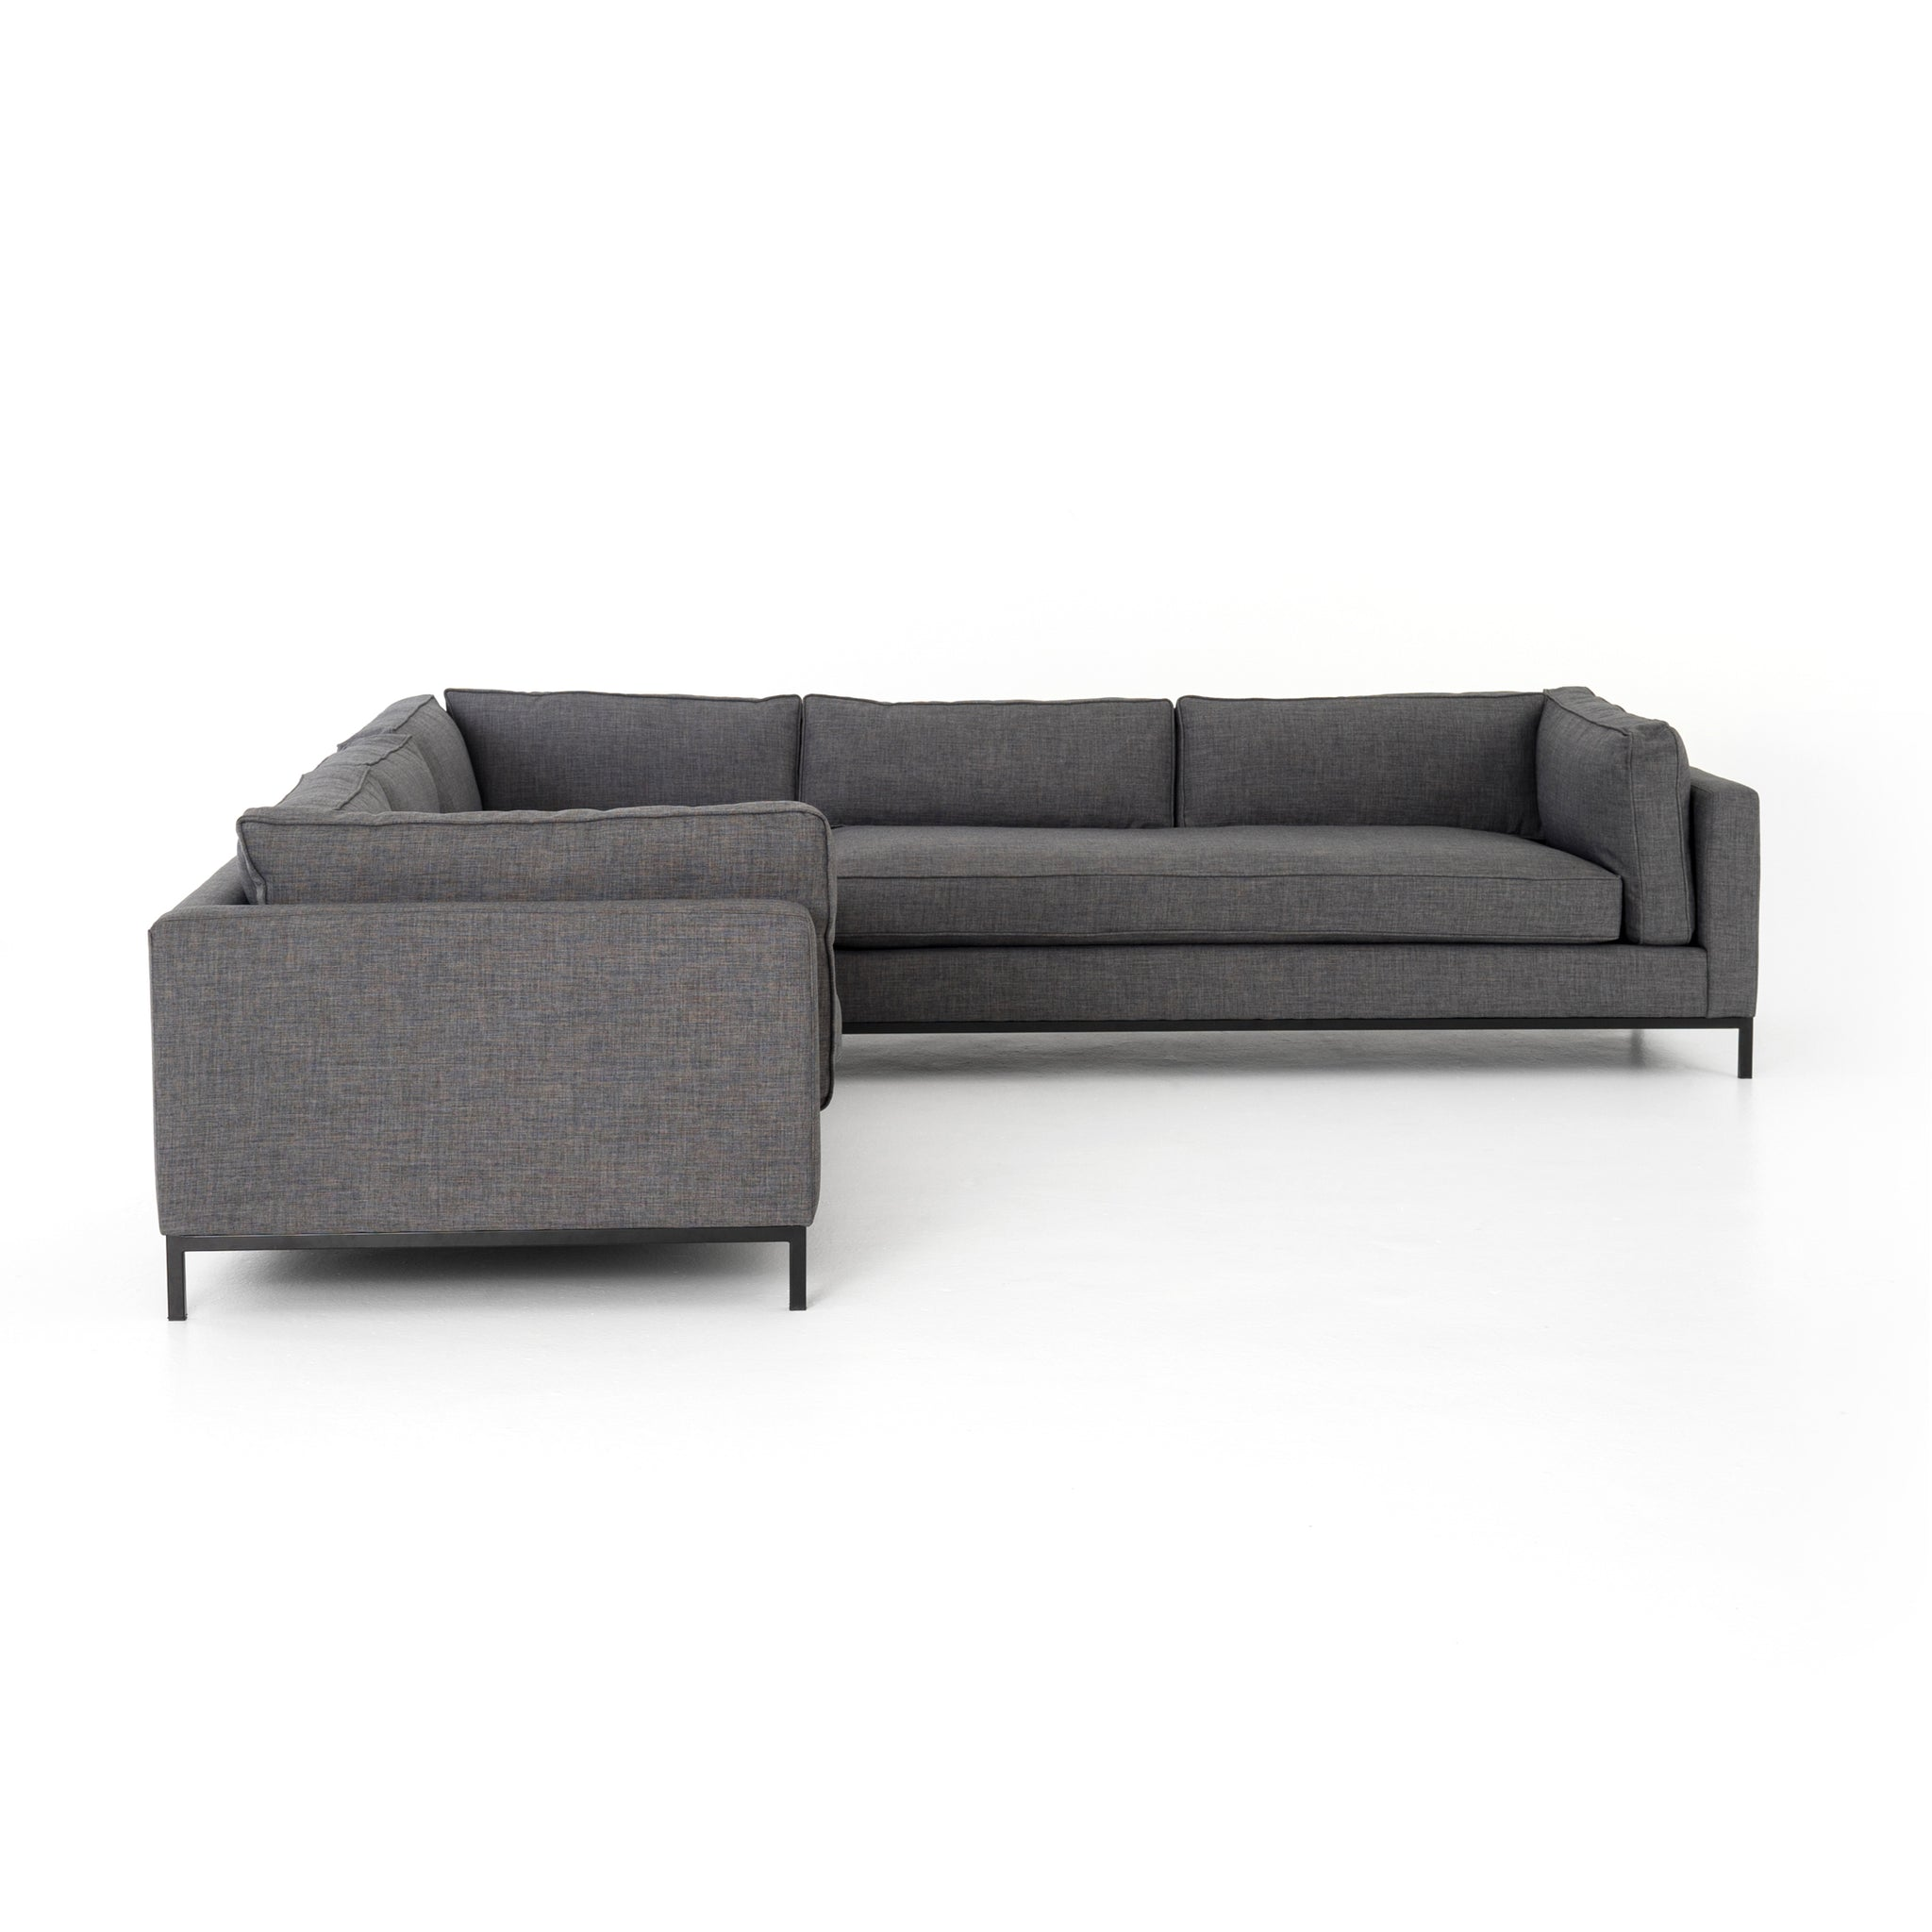 Charcoal Grey 3 pc. Sectional Modern